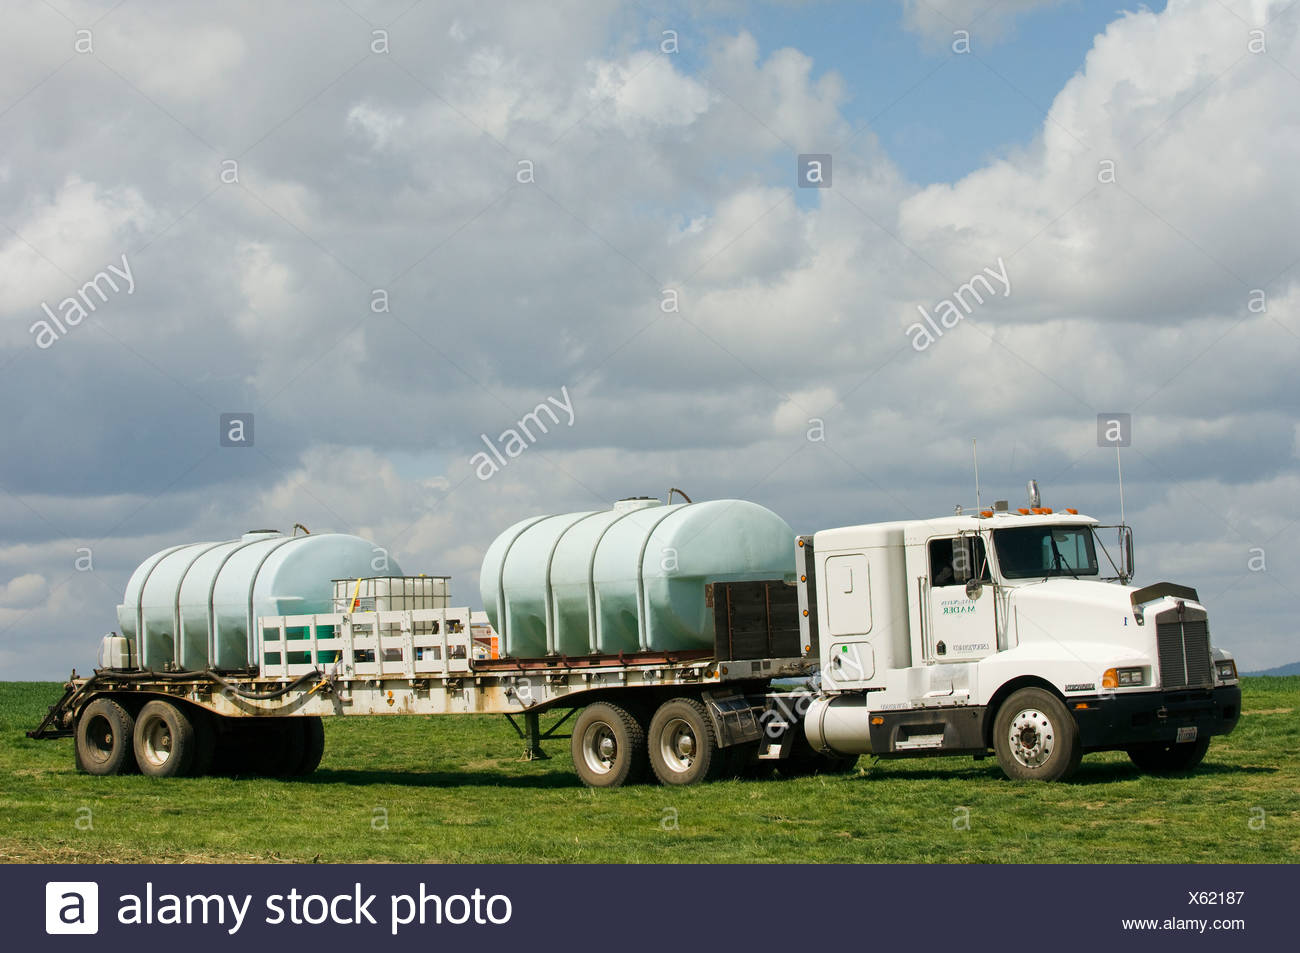 Truck loaded with chemicals to support spraying wheat fields for weeds / near Pullman, Palouse Region, Washington, USA. - Stock Image